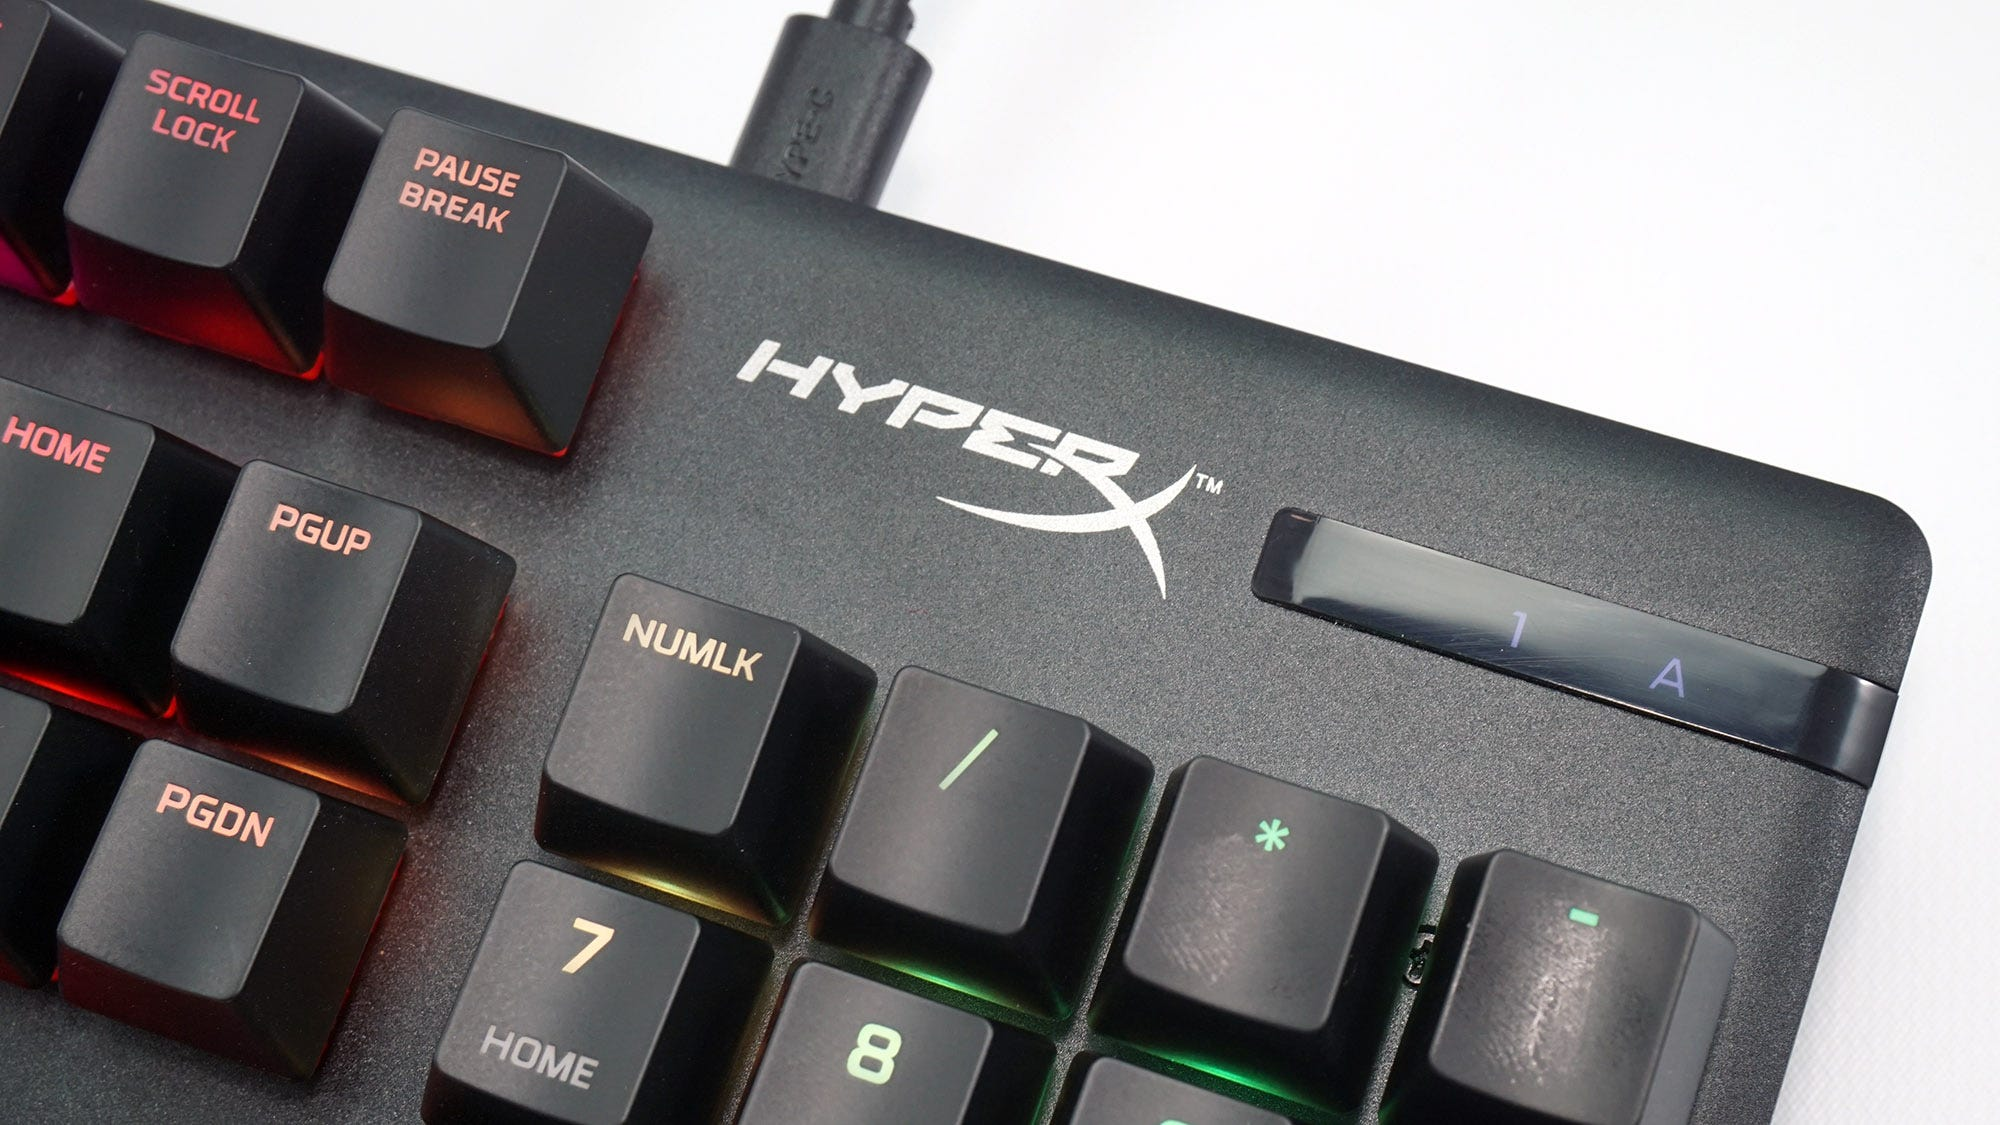 A shot of the keyboard's top logo and status LEDs.